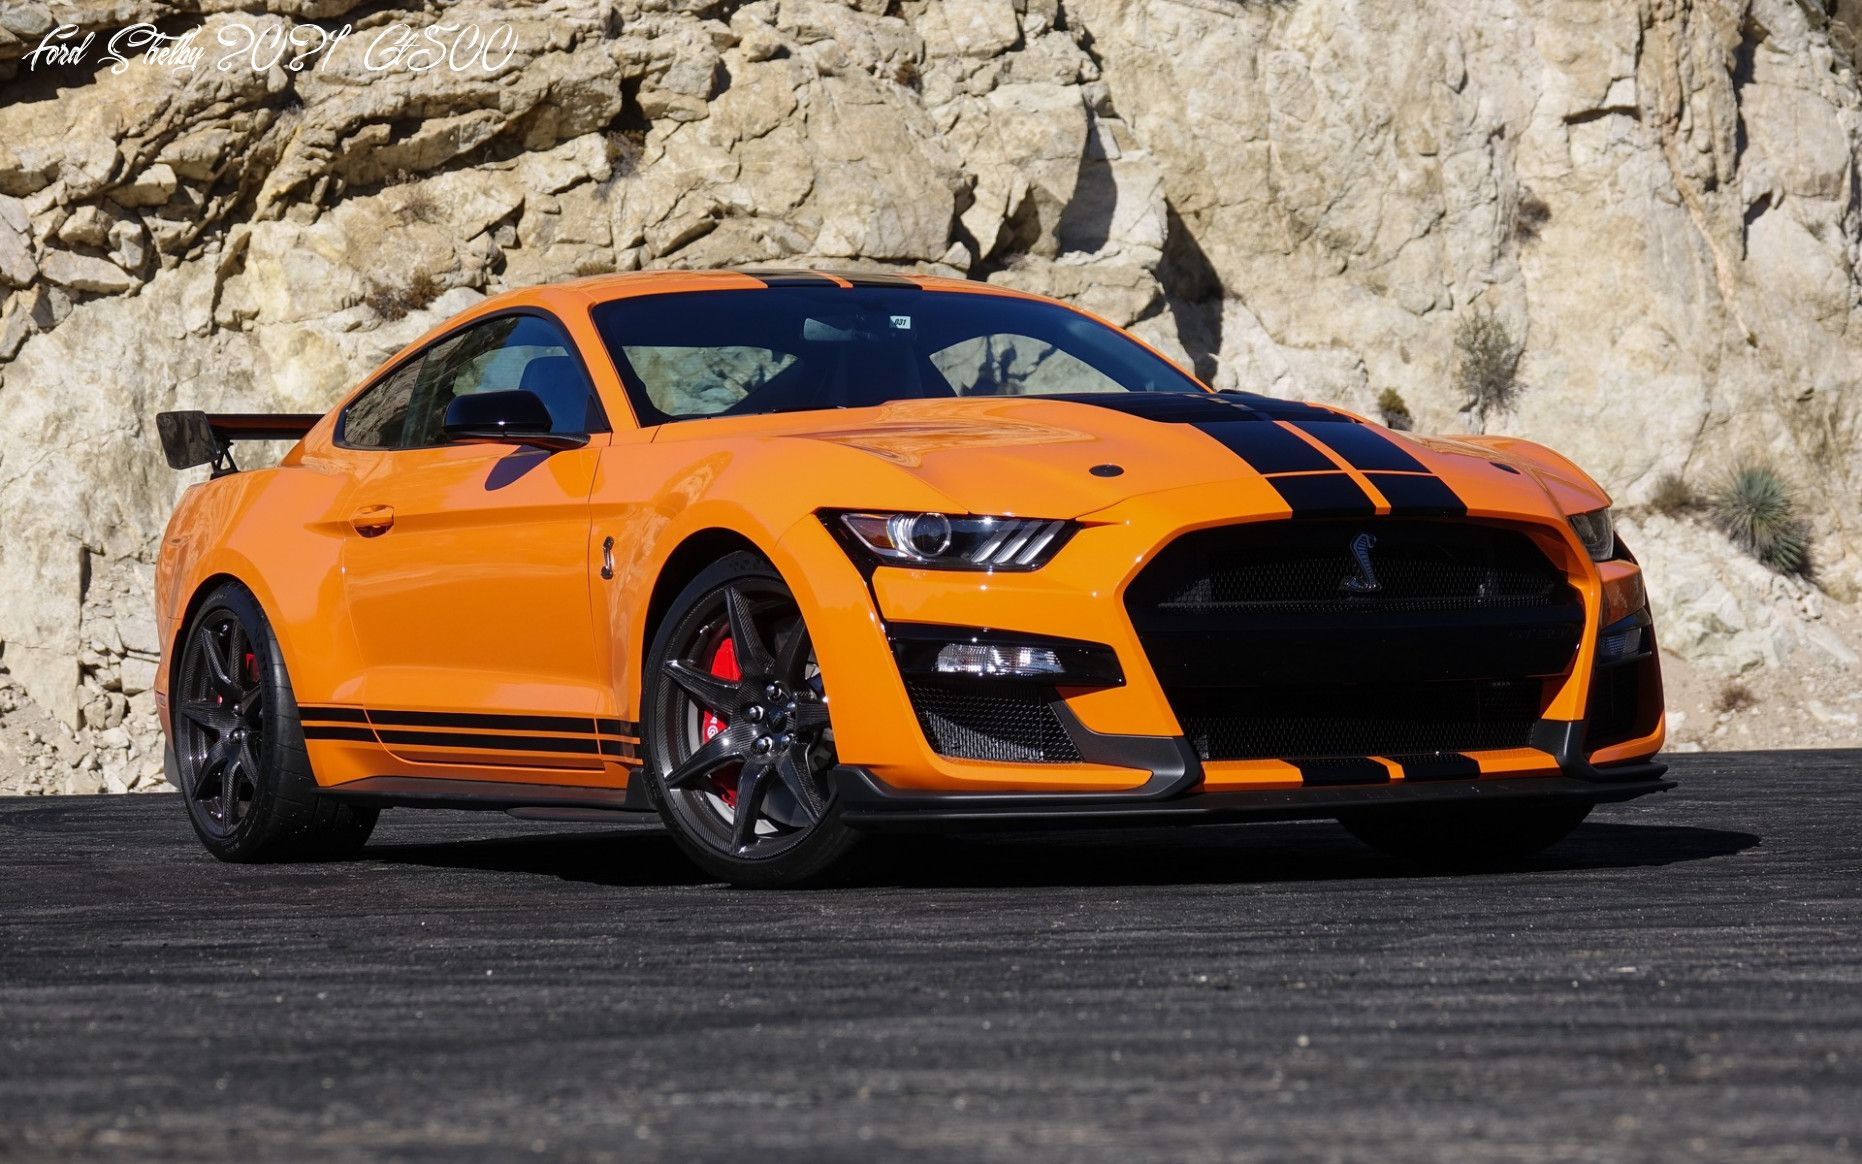 Ford Shelby 2021 Gt500 Price And Release Date In 2020 Ford Mustang Shelby Gt500 Ford Mustang Shelby Mustang Shelby